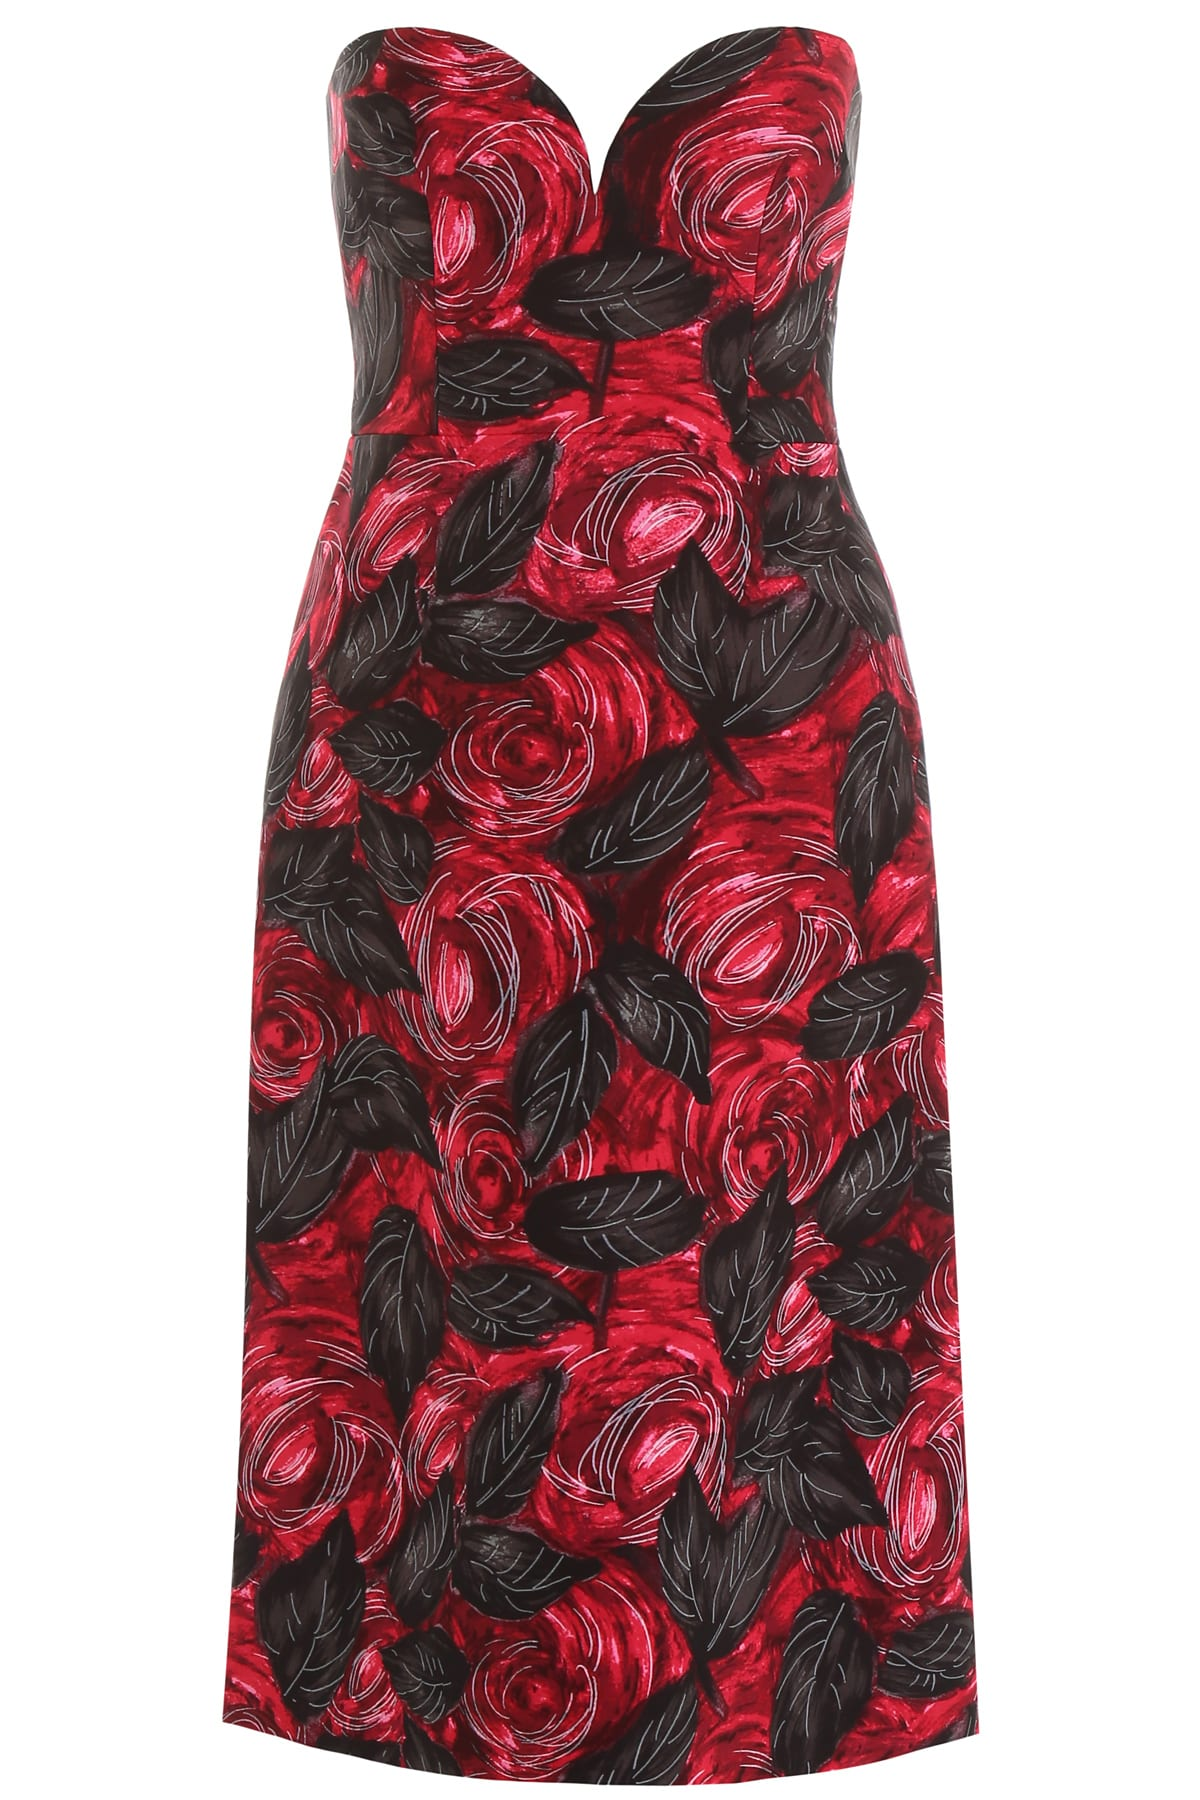 Prada Rose Print Dress